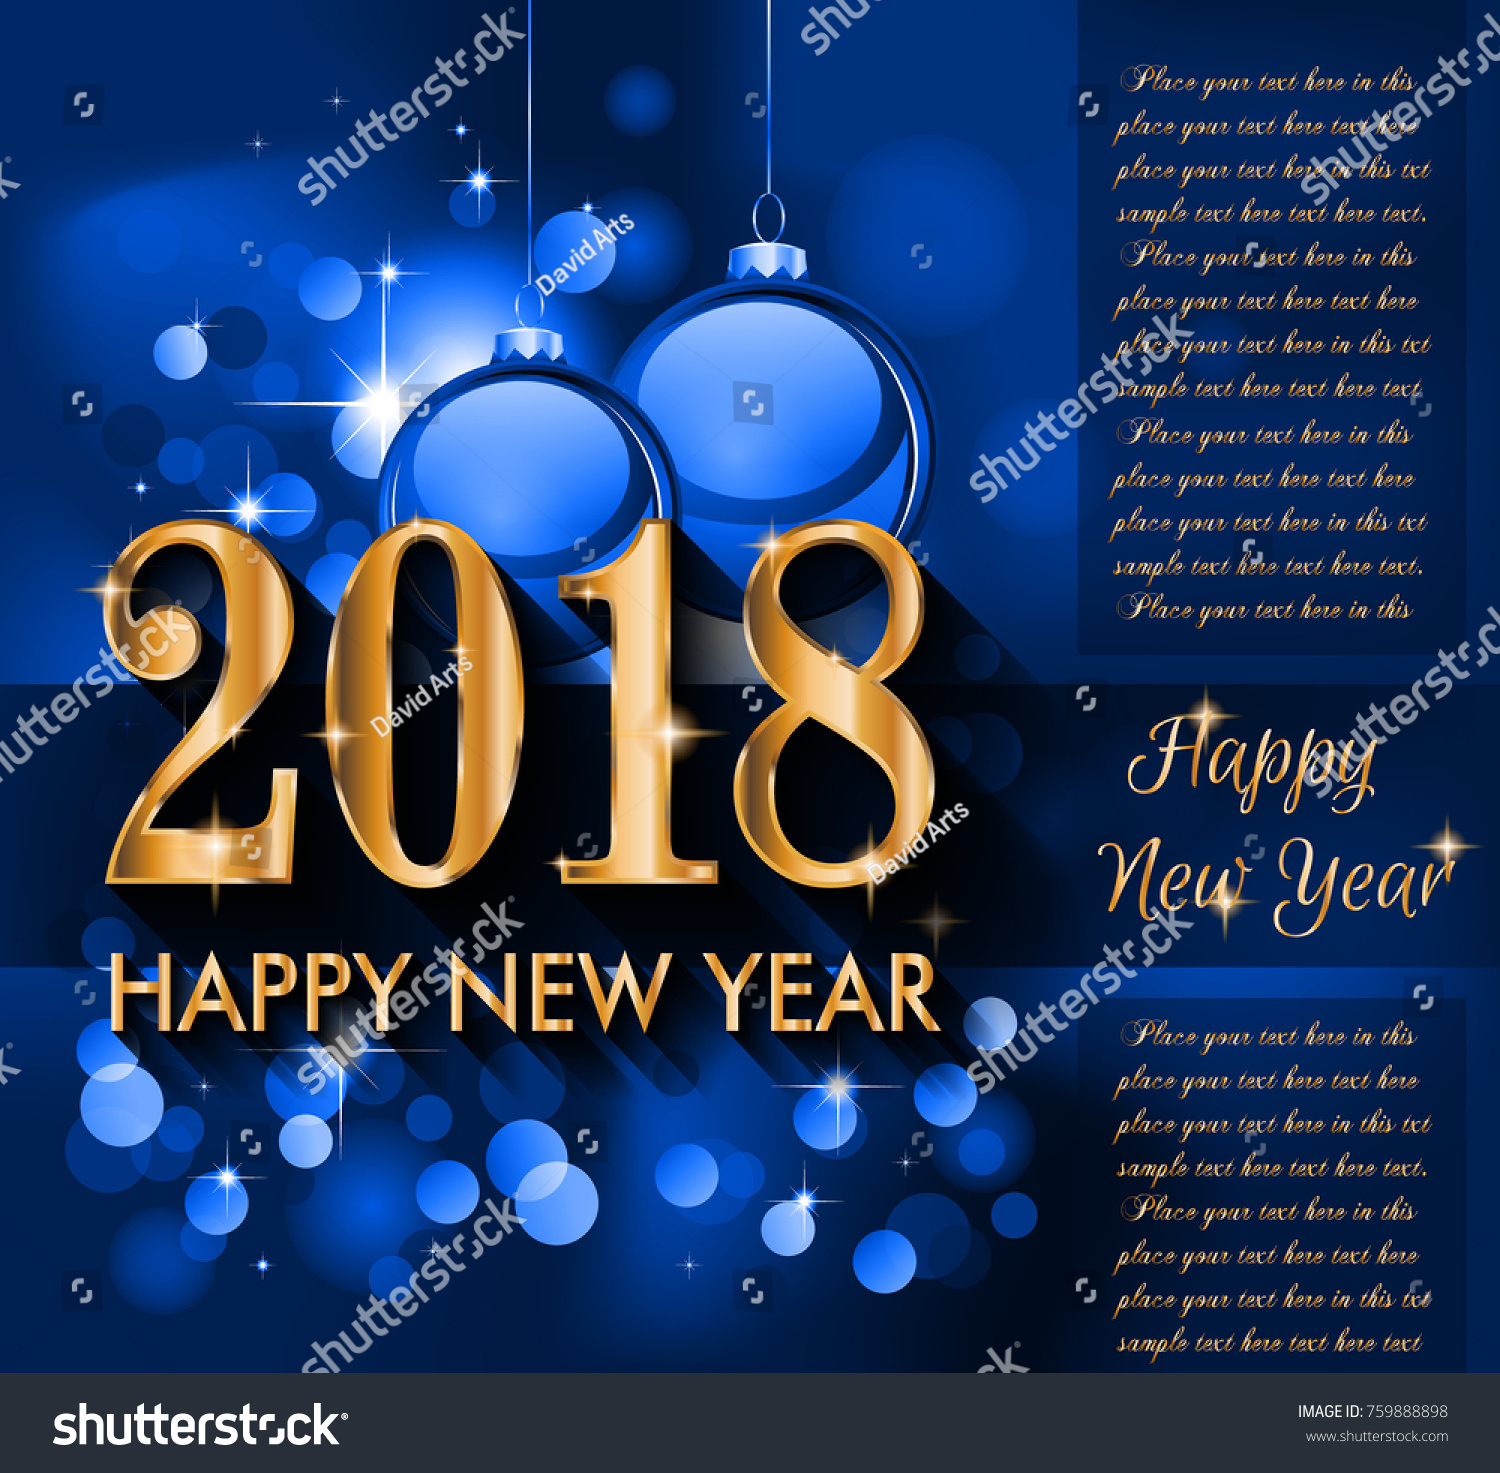 2018 happy new year background your stock vector 759888898 2018 happy new year background for your seasonal flyers and greetings card or christmas themed invitations kristyandbryce Choice Image